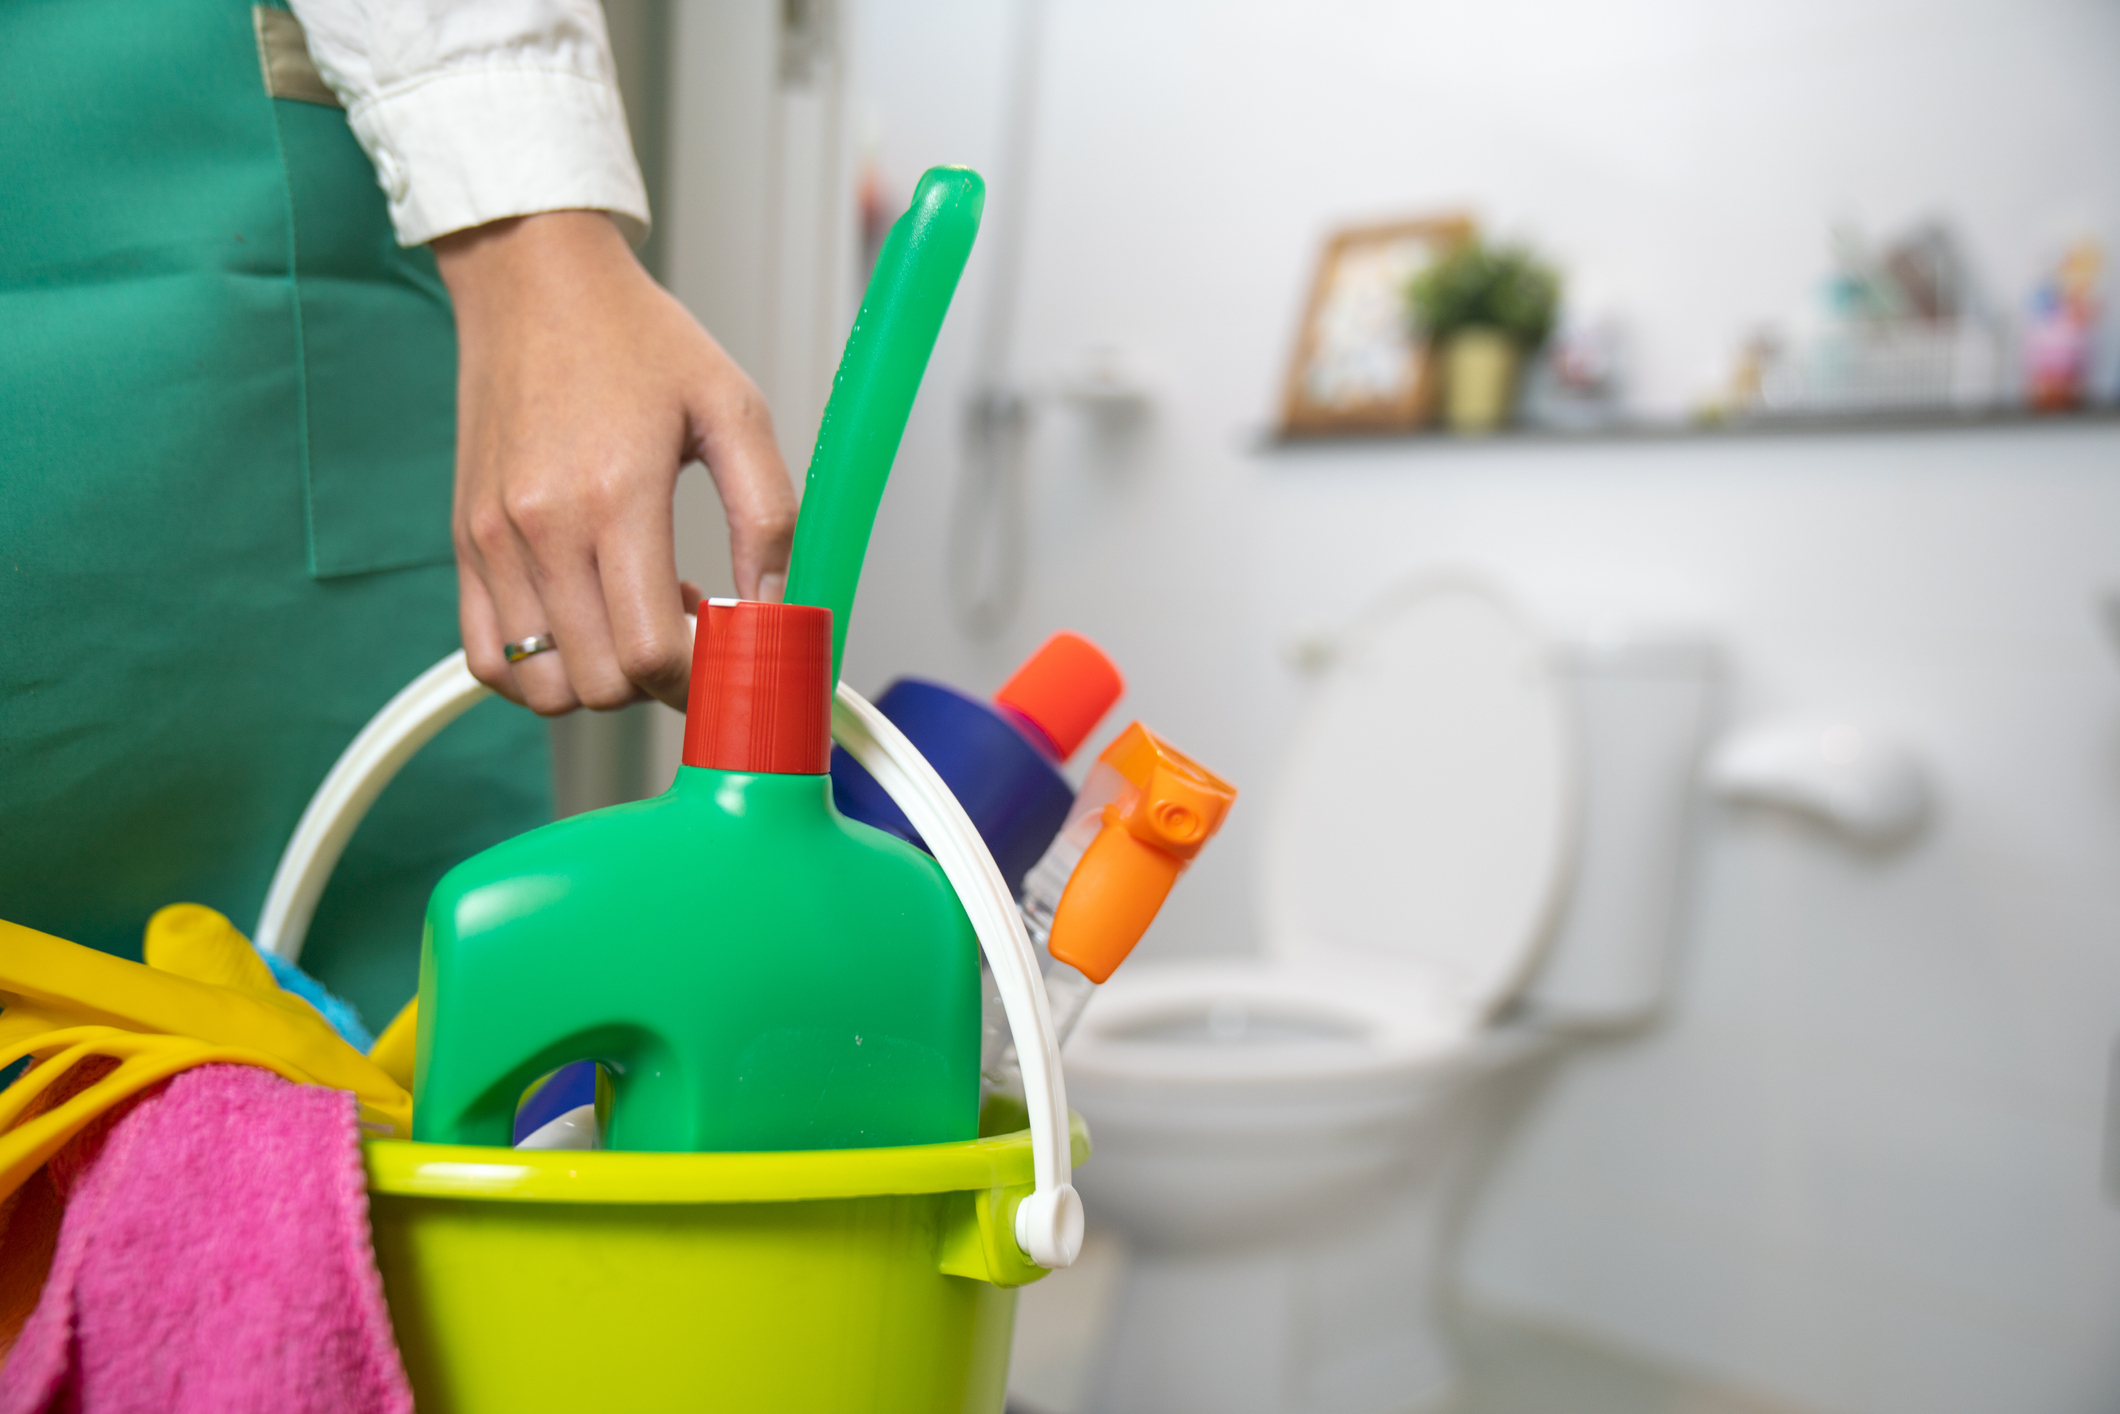 What Are the Best Bathroom Cleaning Products? — HowStuffWorks